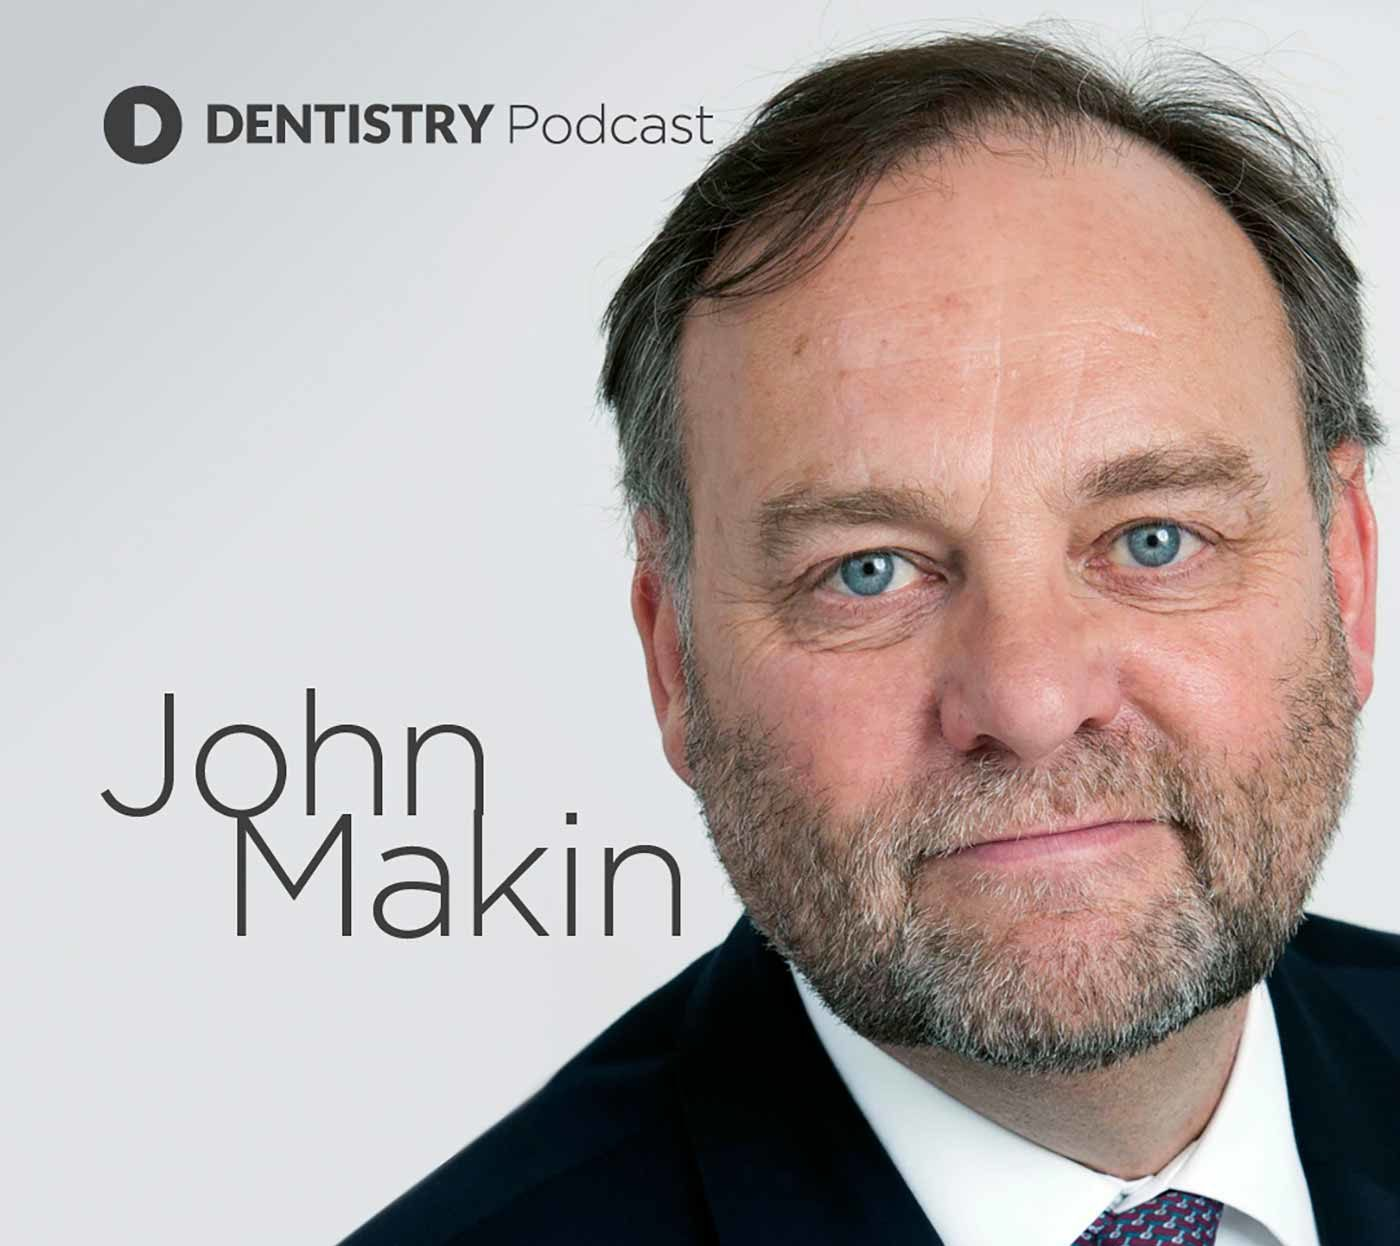 John Makin discusses his journey into dentistry and the key dento-legal questions of the last 12 months